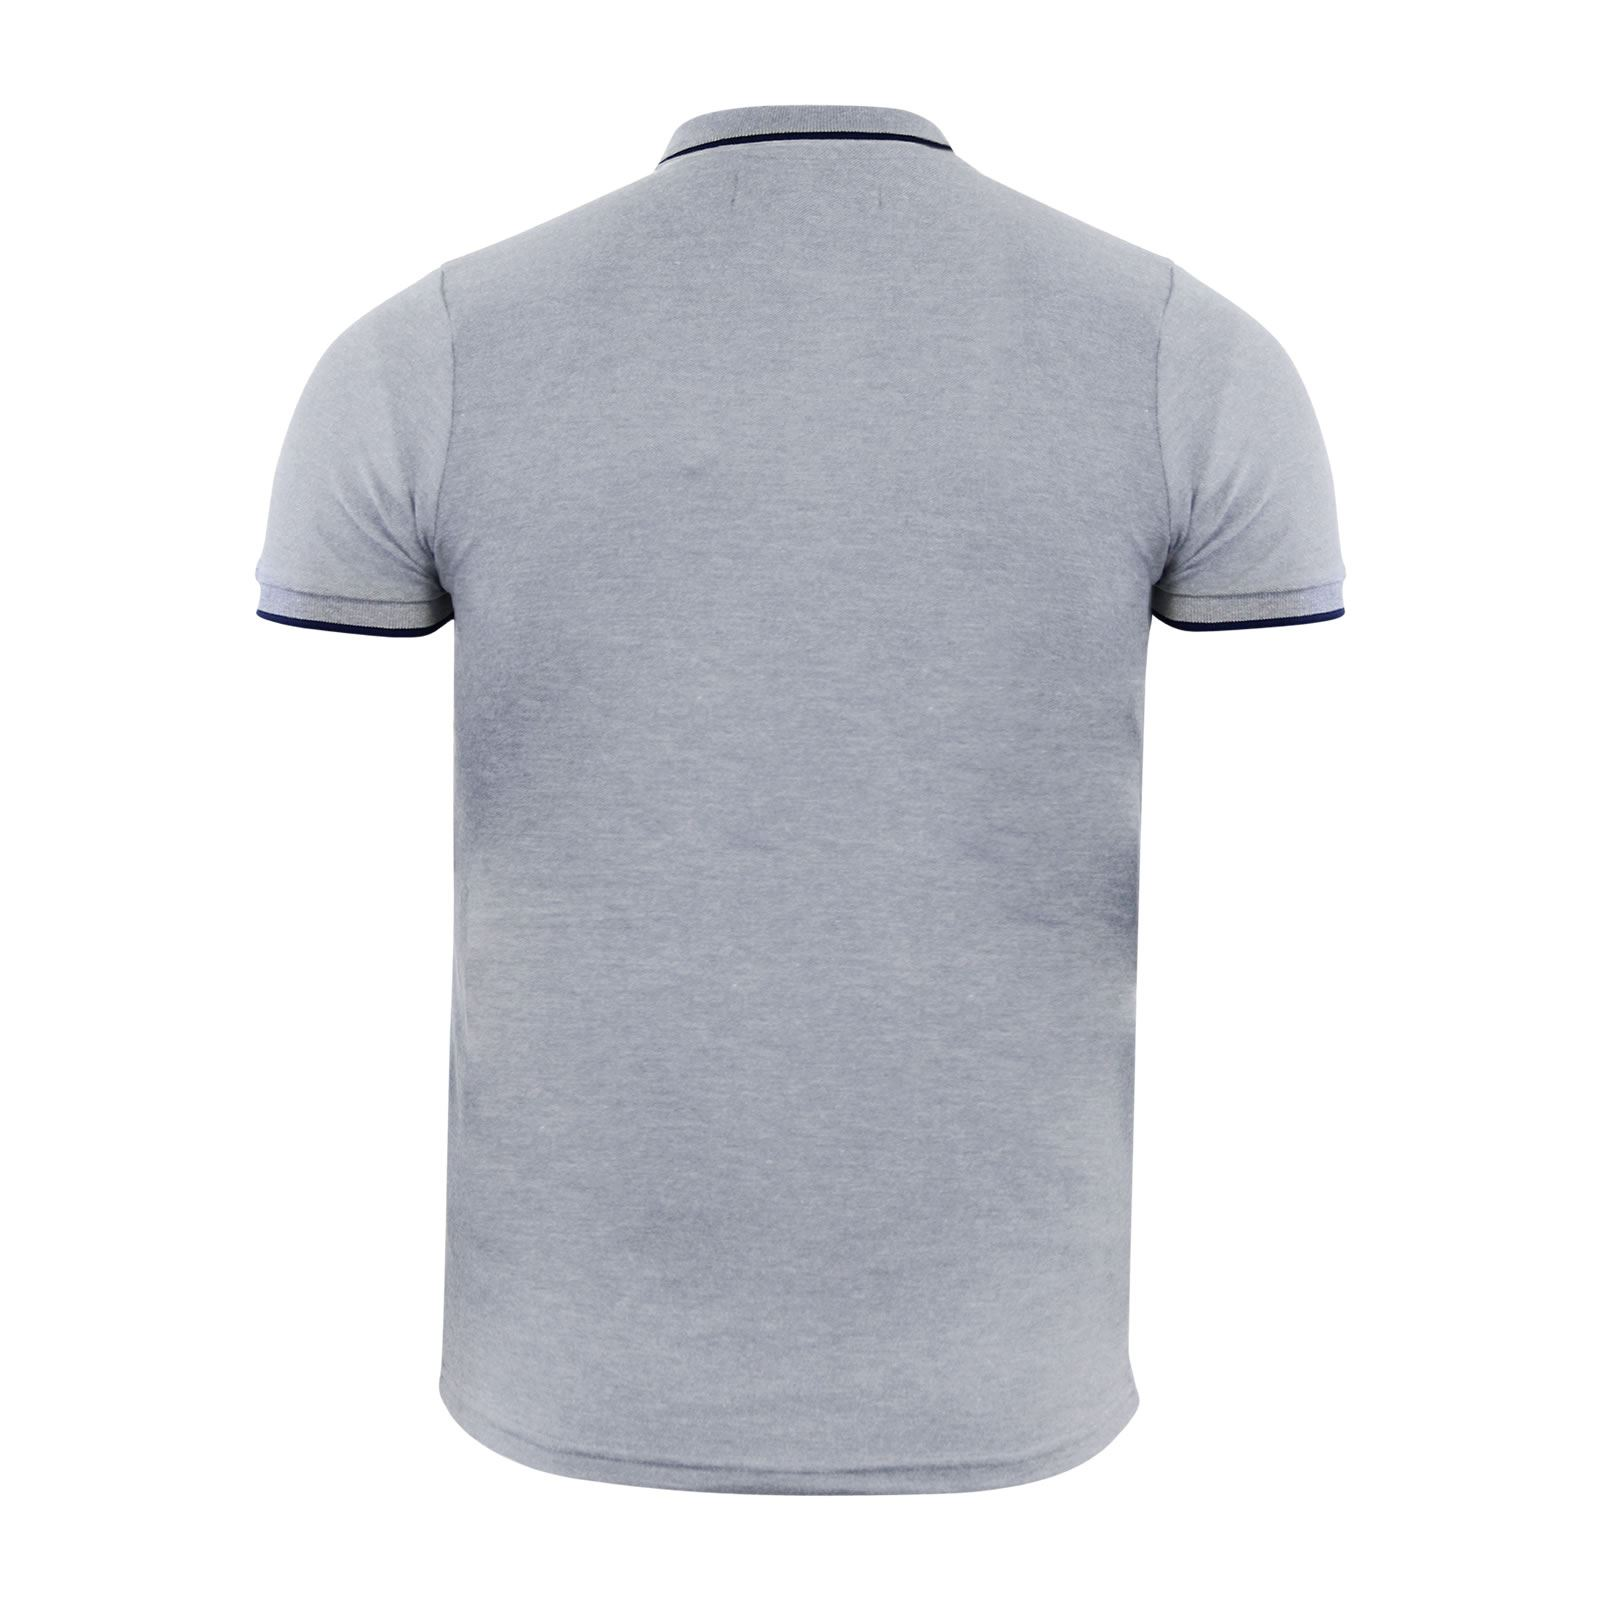 Crosshatch-Mens-Polo-T-Shirt-Pique-Polo-Cotton-Collared-Short-Sleeve-T-Shirt thumbnail 81